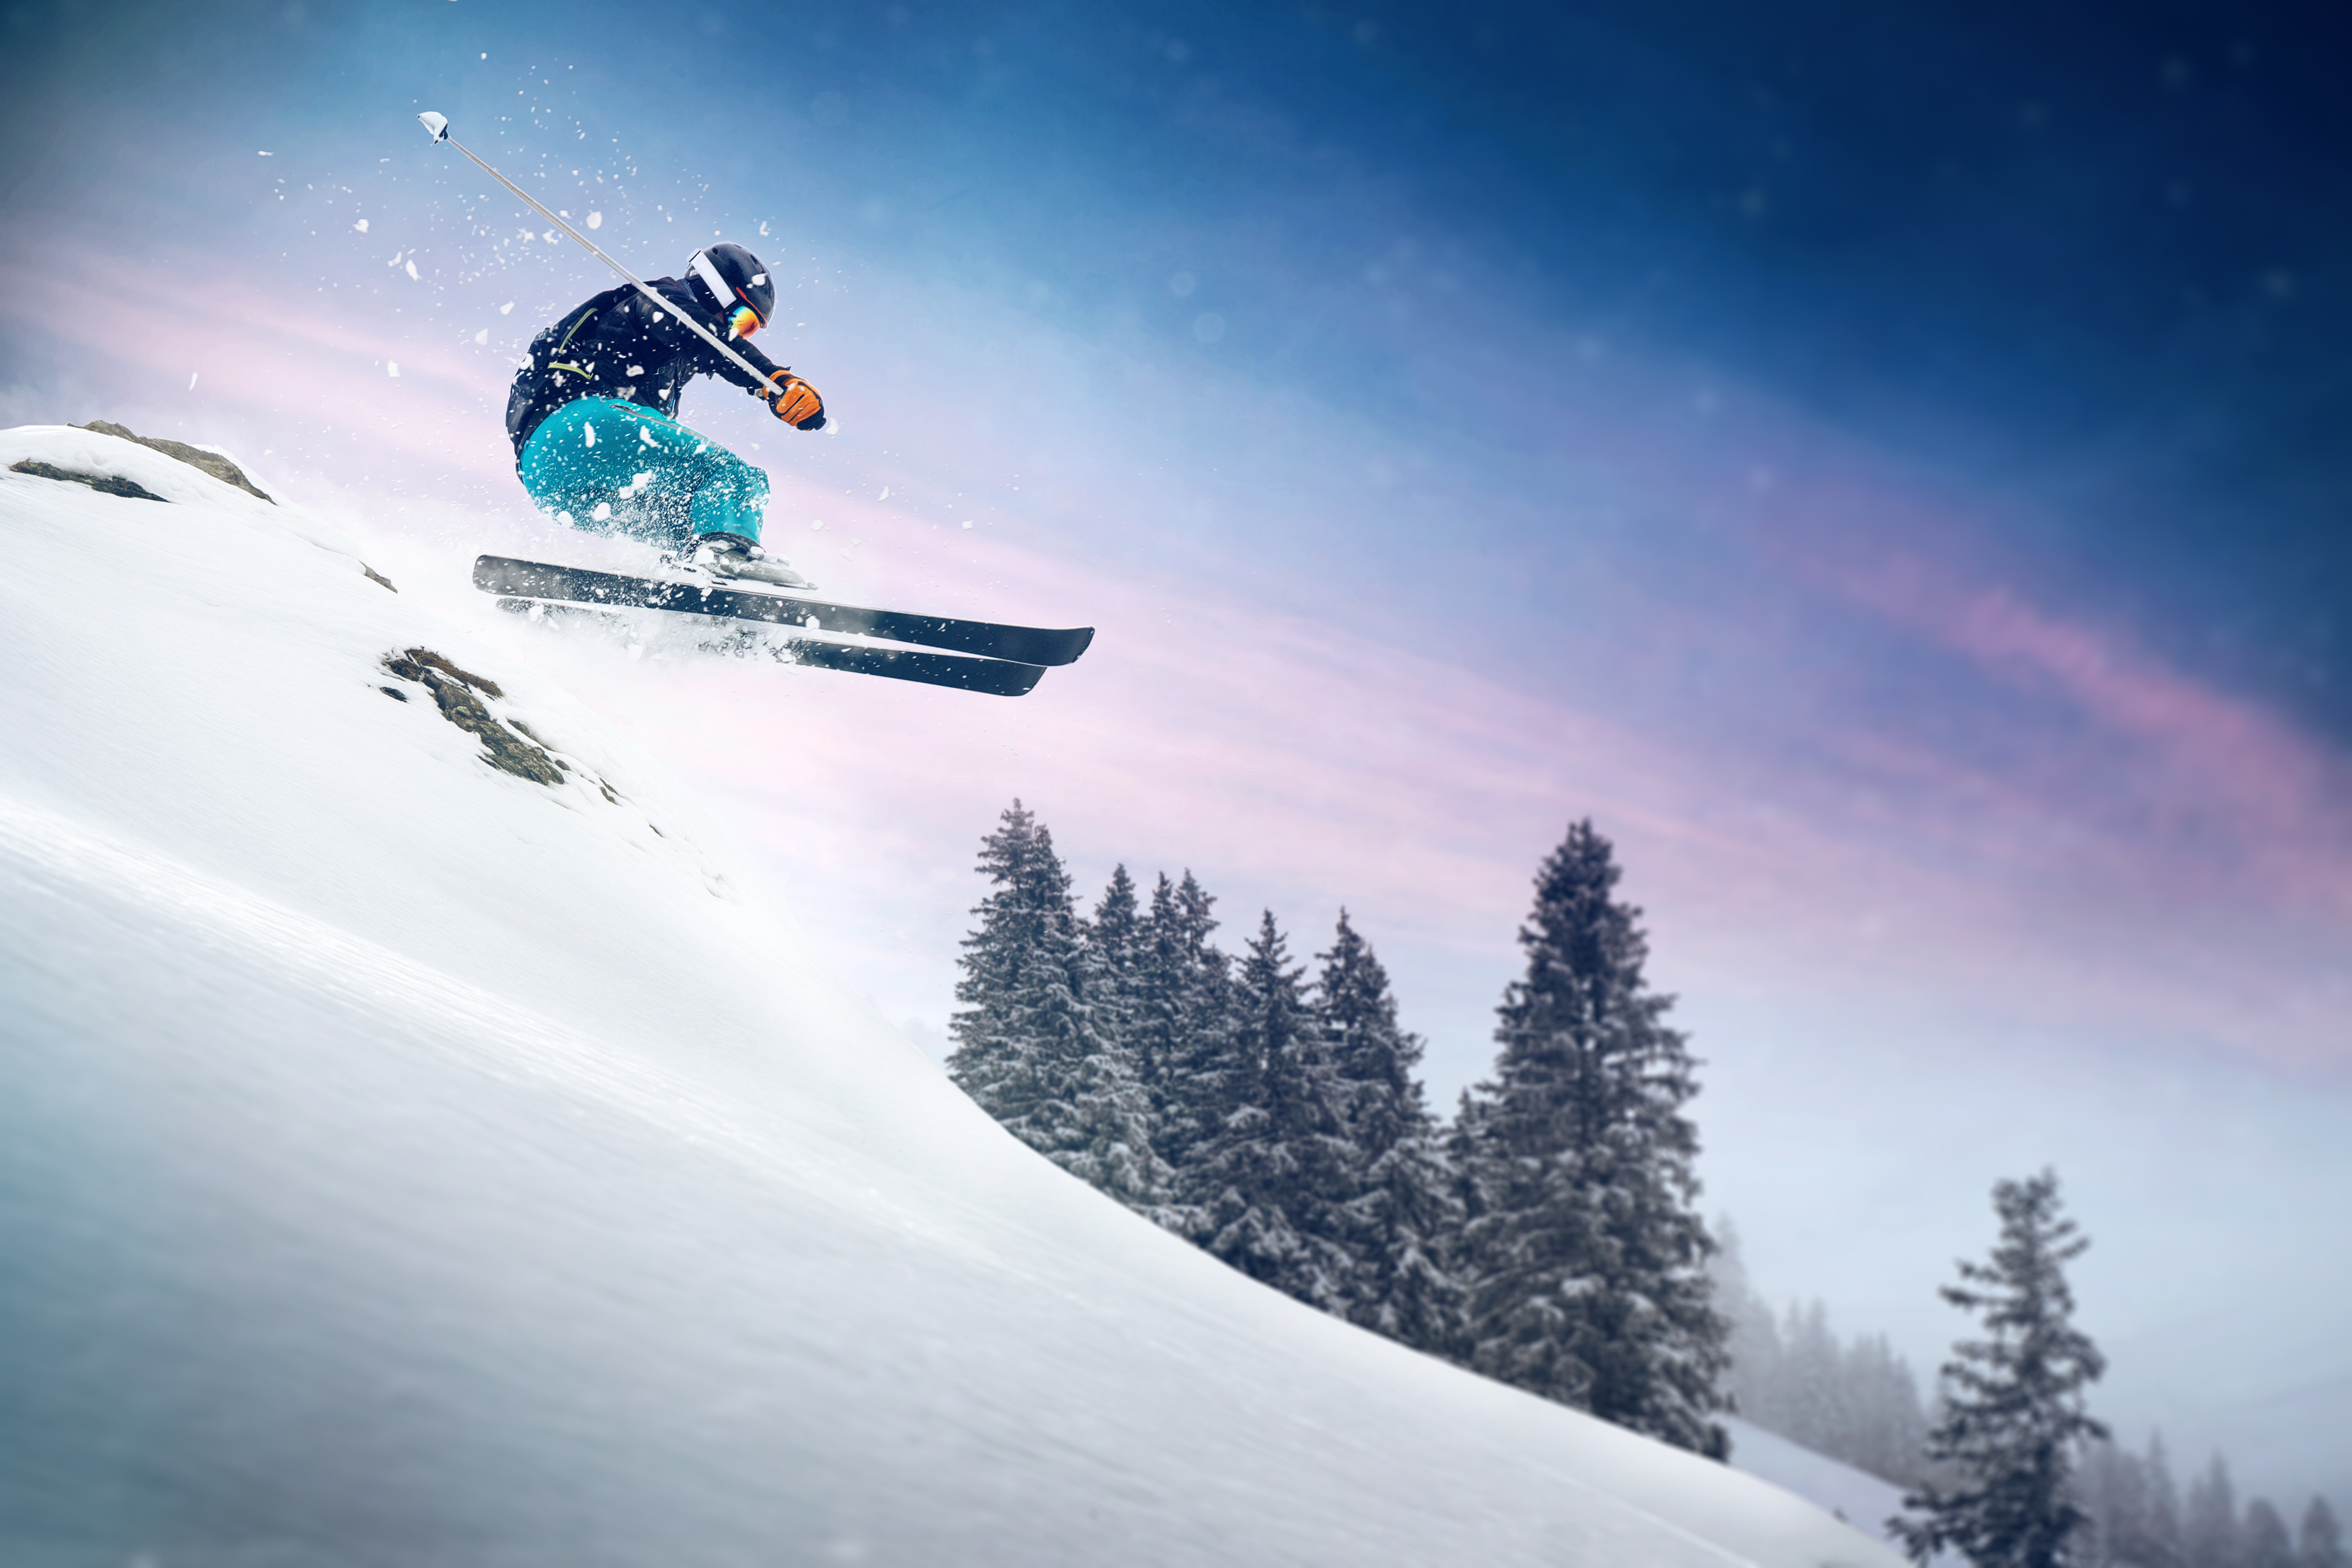 skiing Ski gear from amazoncom whether you're ready to hit the slopes this weekend or are stocking up for next season's snow, having the right ski gear makes all the difference in your performance on the mountain.